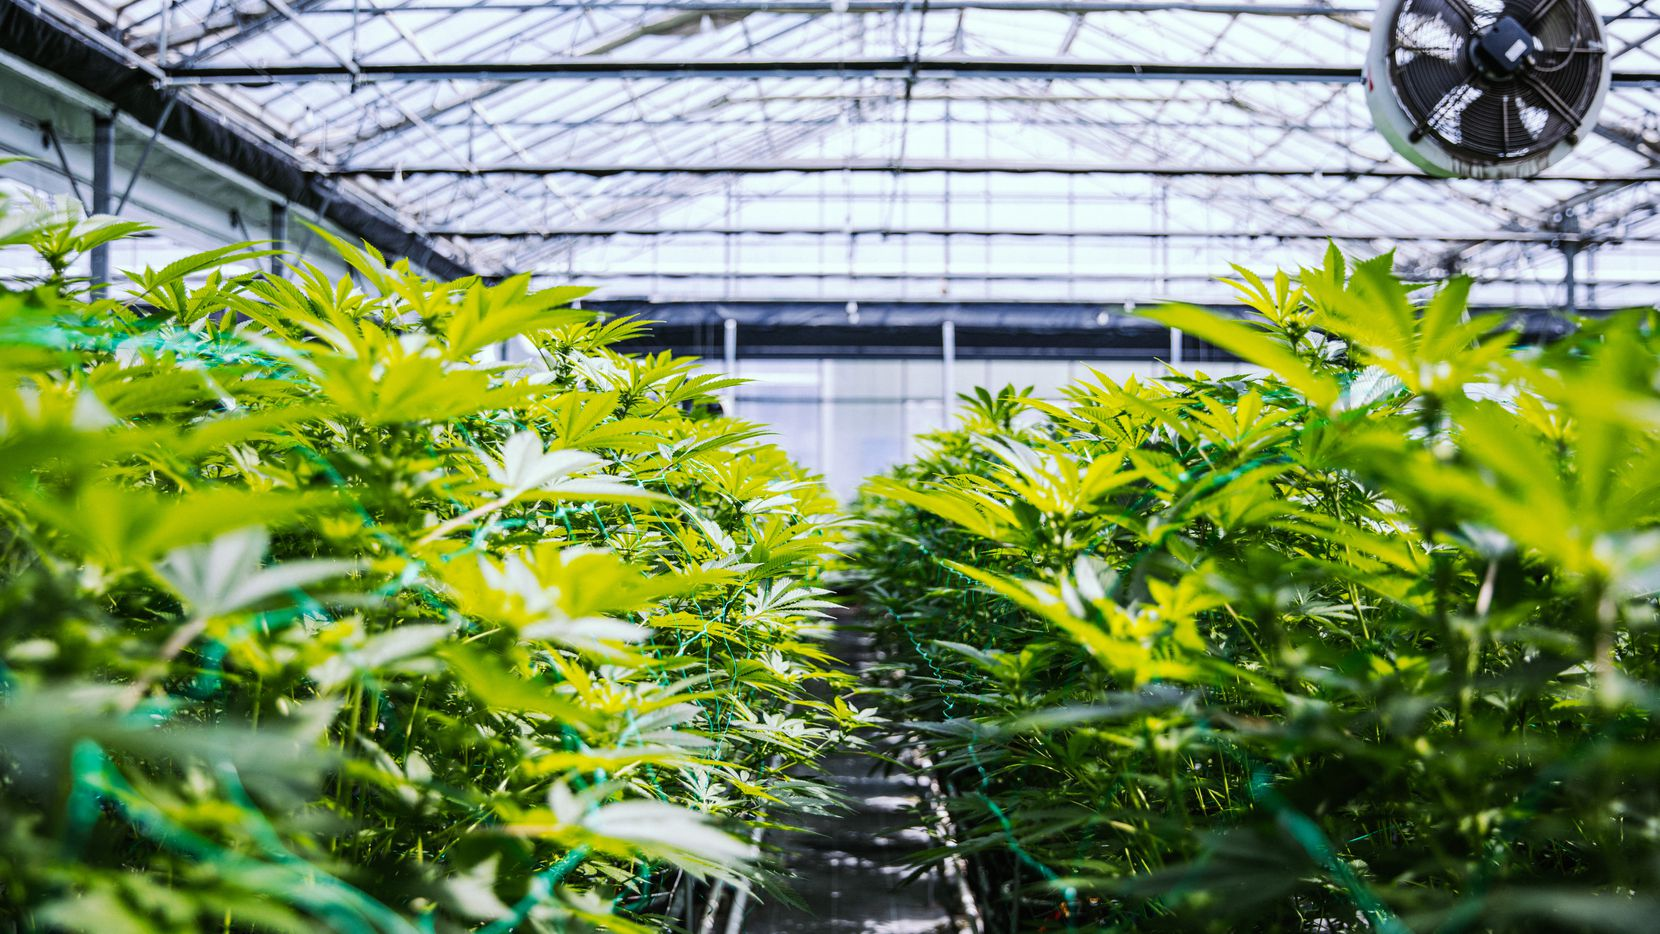 One of the cannabis industry's biggest investors is a Dallas firm.